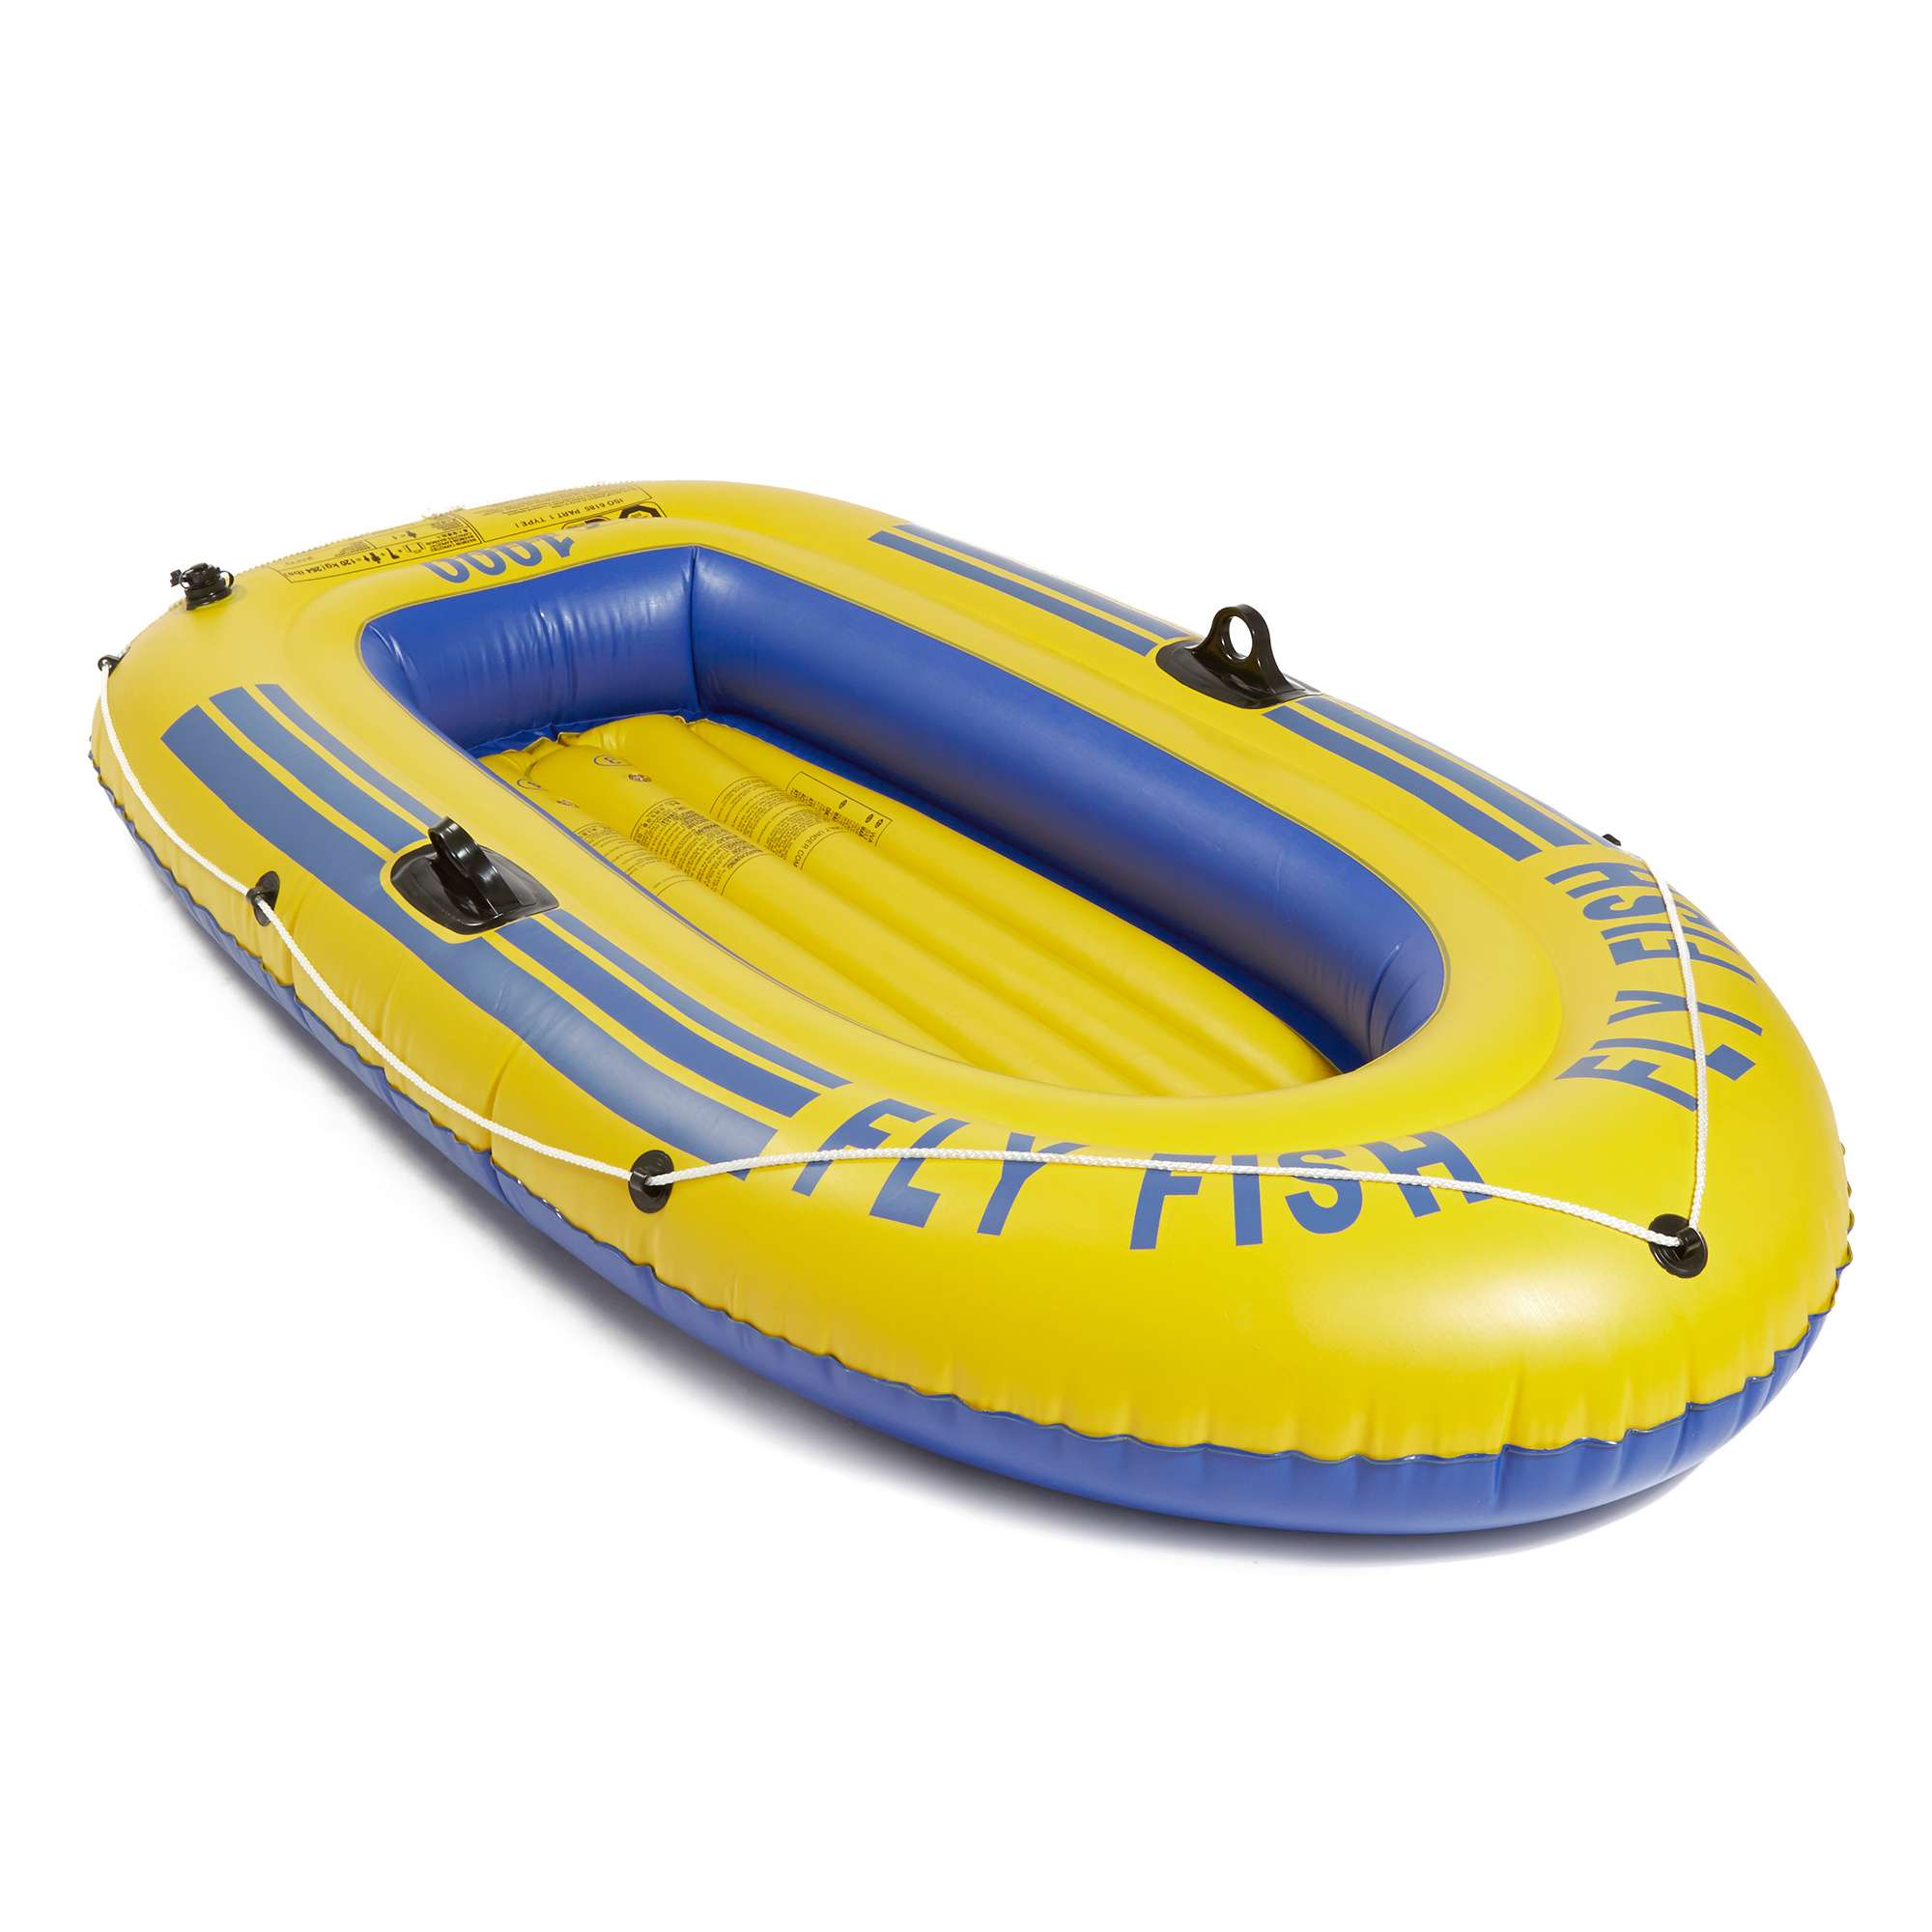 MILLETS Inflatable Boat